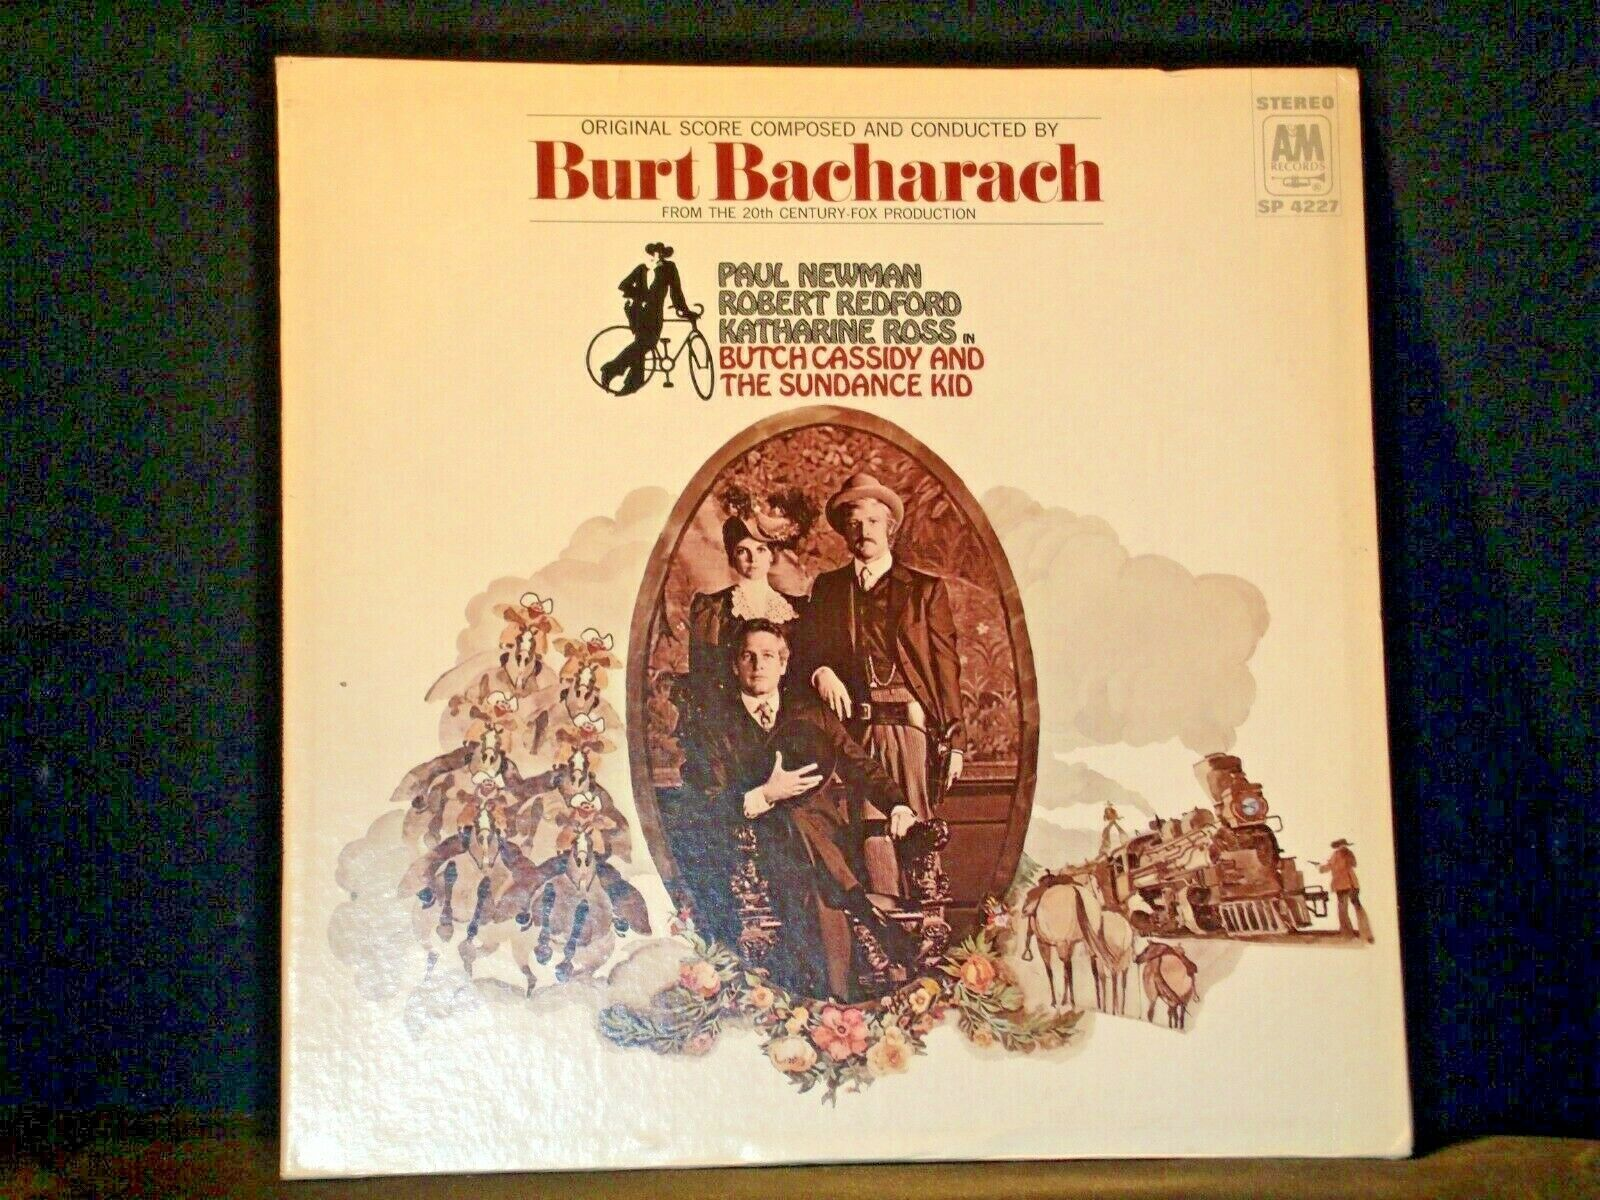 Burt Bacharach - Butch Cassidy & the Sundance Kid AA-191721 Vintage Collectible